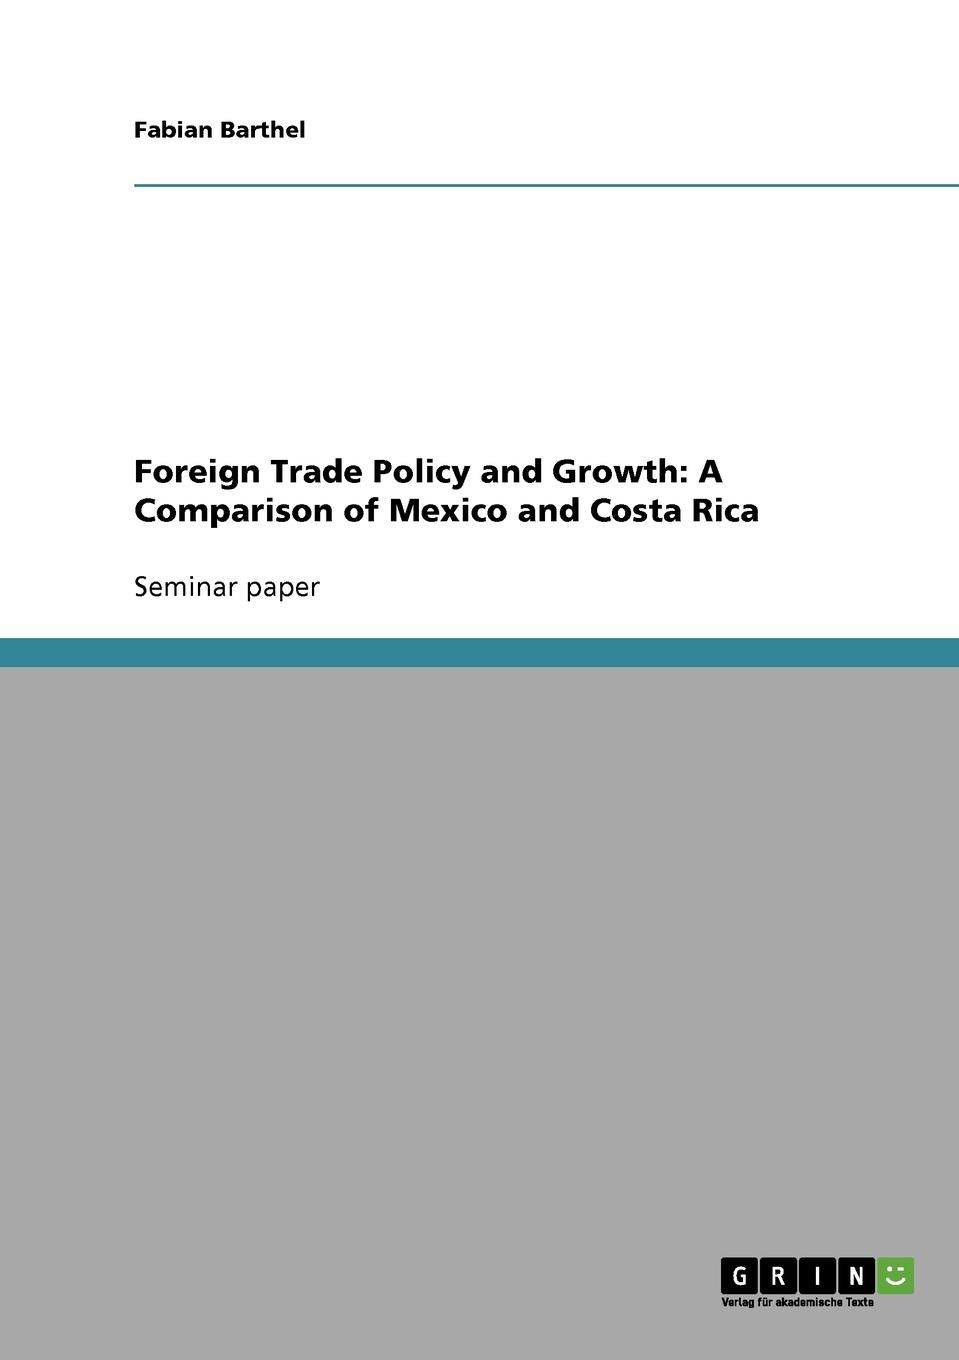 Fabian Barthel Foreign Trade Policy and Growth. A Comparison of Mexico and Costa Rica sachin kumar sharma rationalisation of input subsidy in india under trade liberalisation